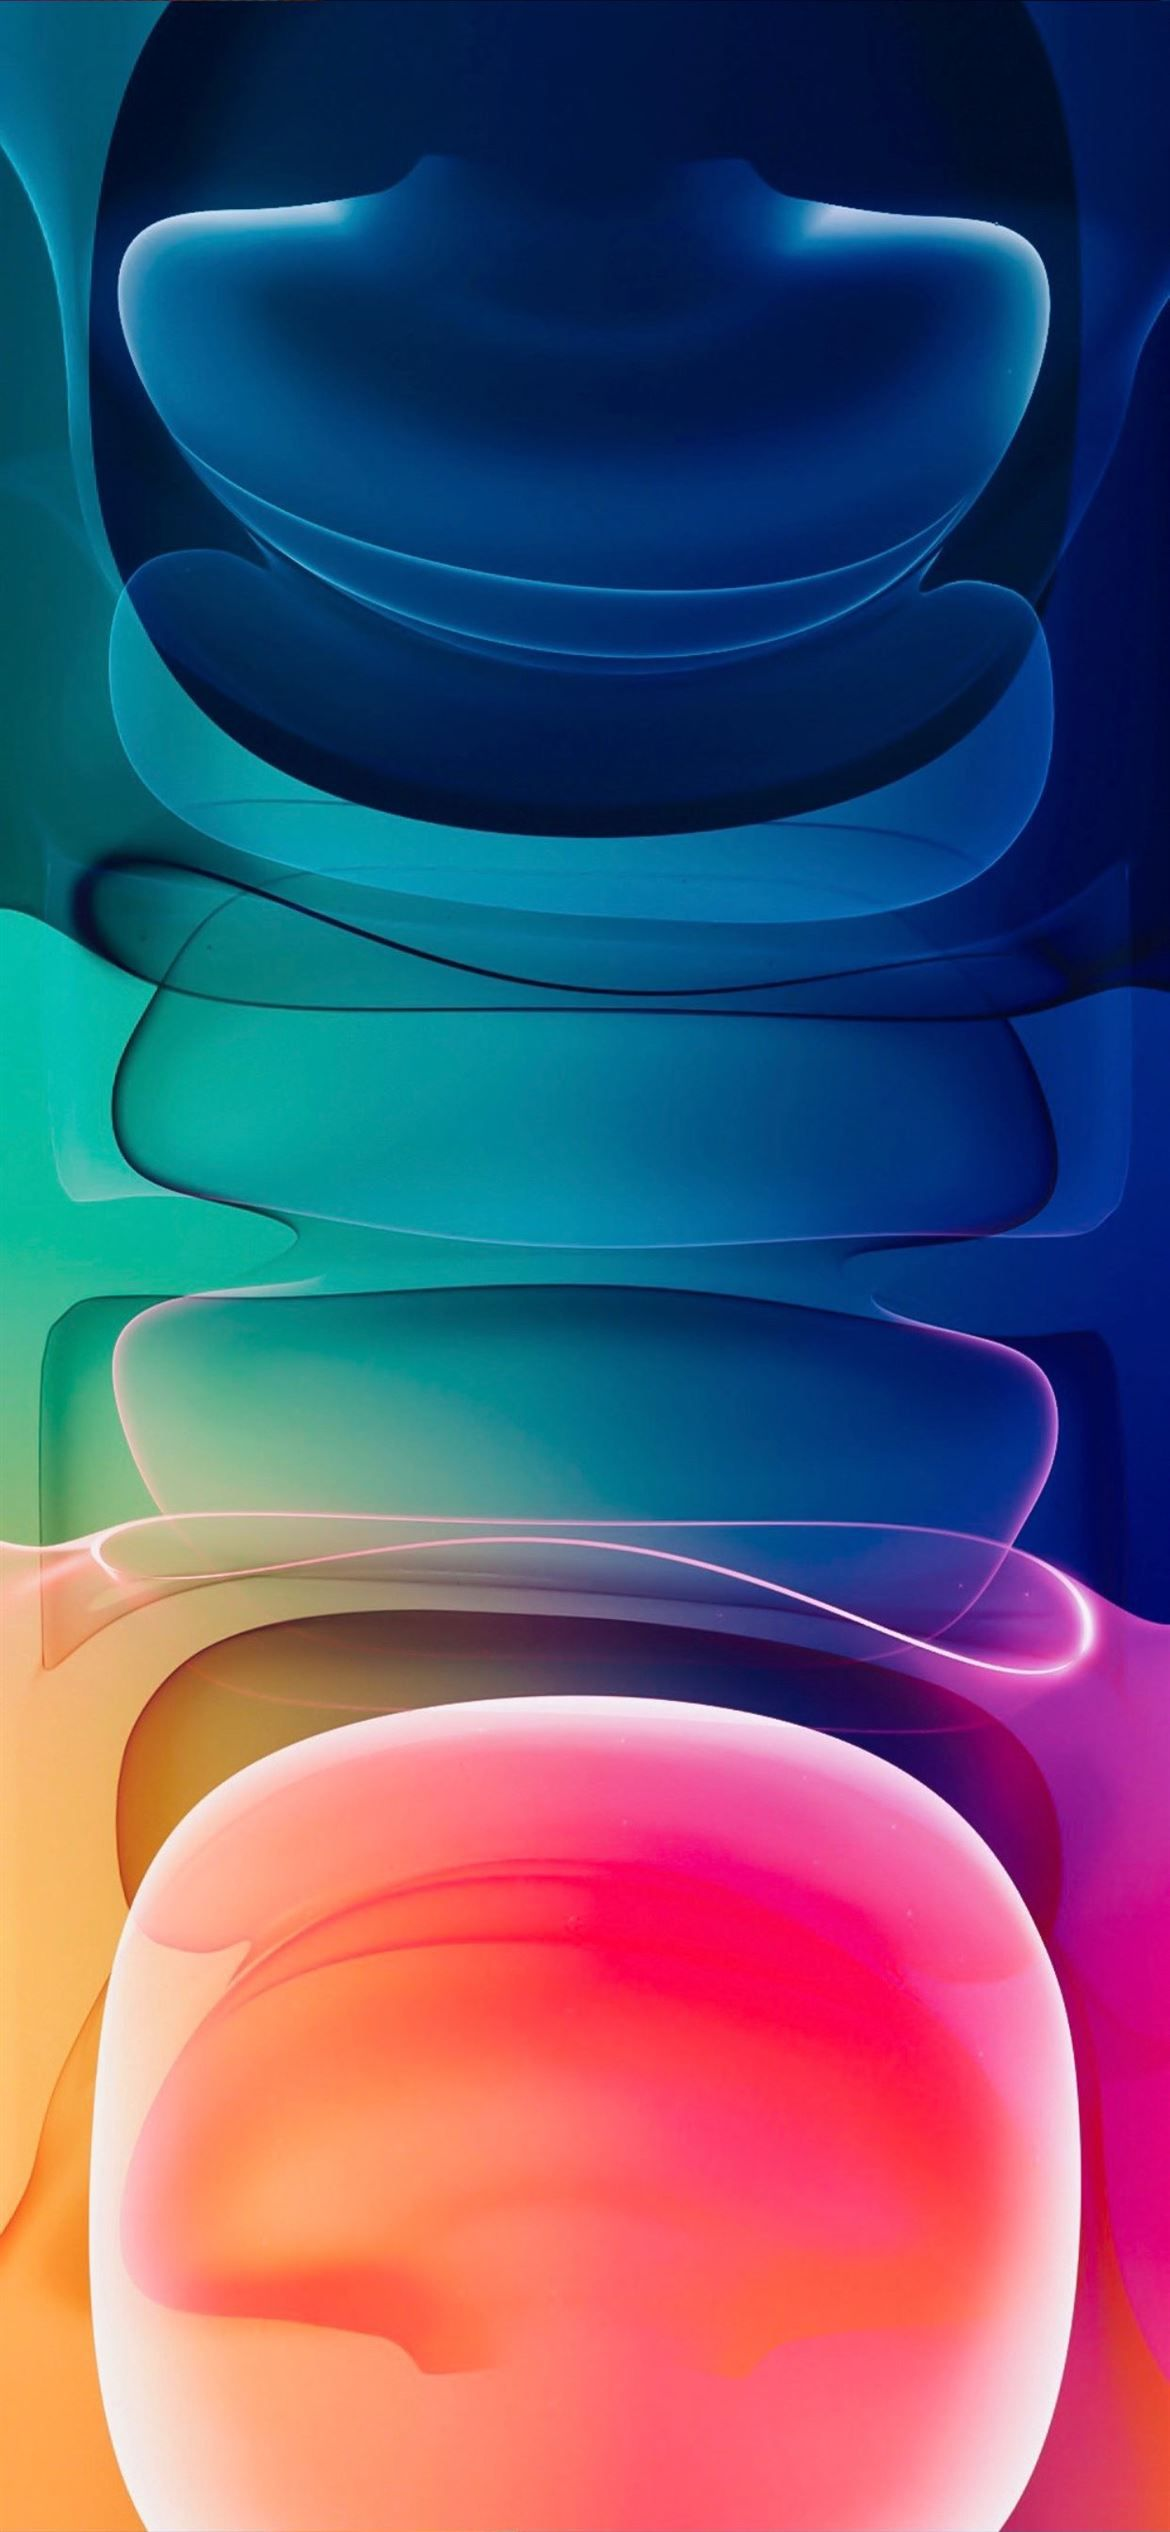 Awesome Iphone Wallpaper 4k 12 Pro Max wallpapers to download for free greenvirals